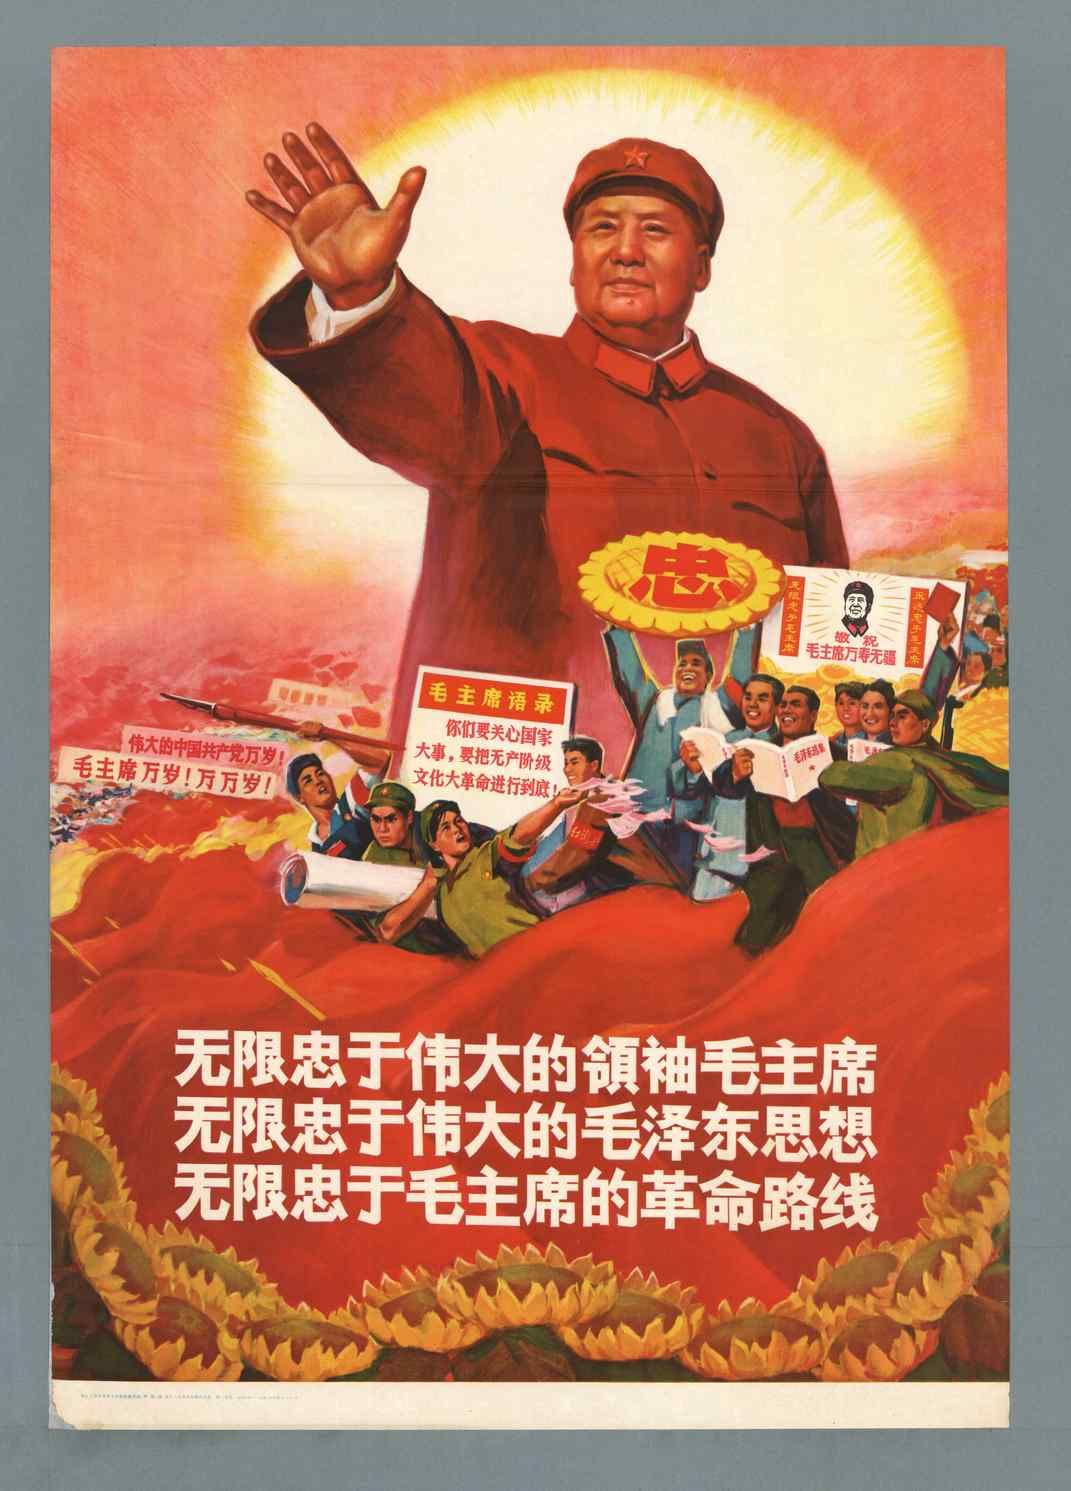 poster illustration graphic design hanoi this says boundlessly loyal to the great leader chairman mao boundlessly loyal to the great mao zedong thought boundlessly loyal to chairman mao s